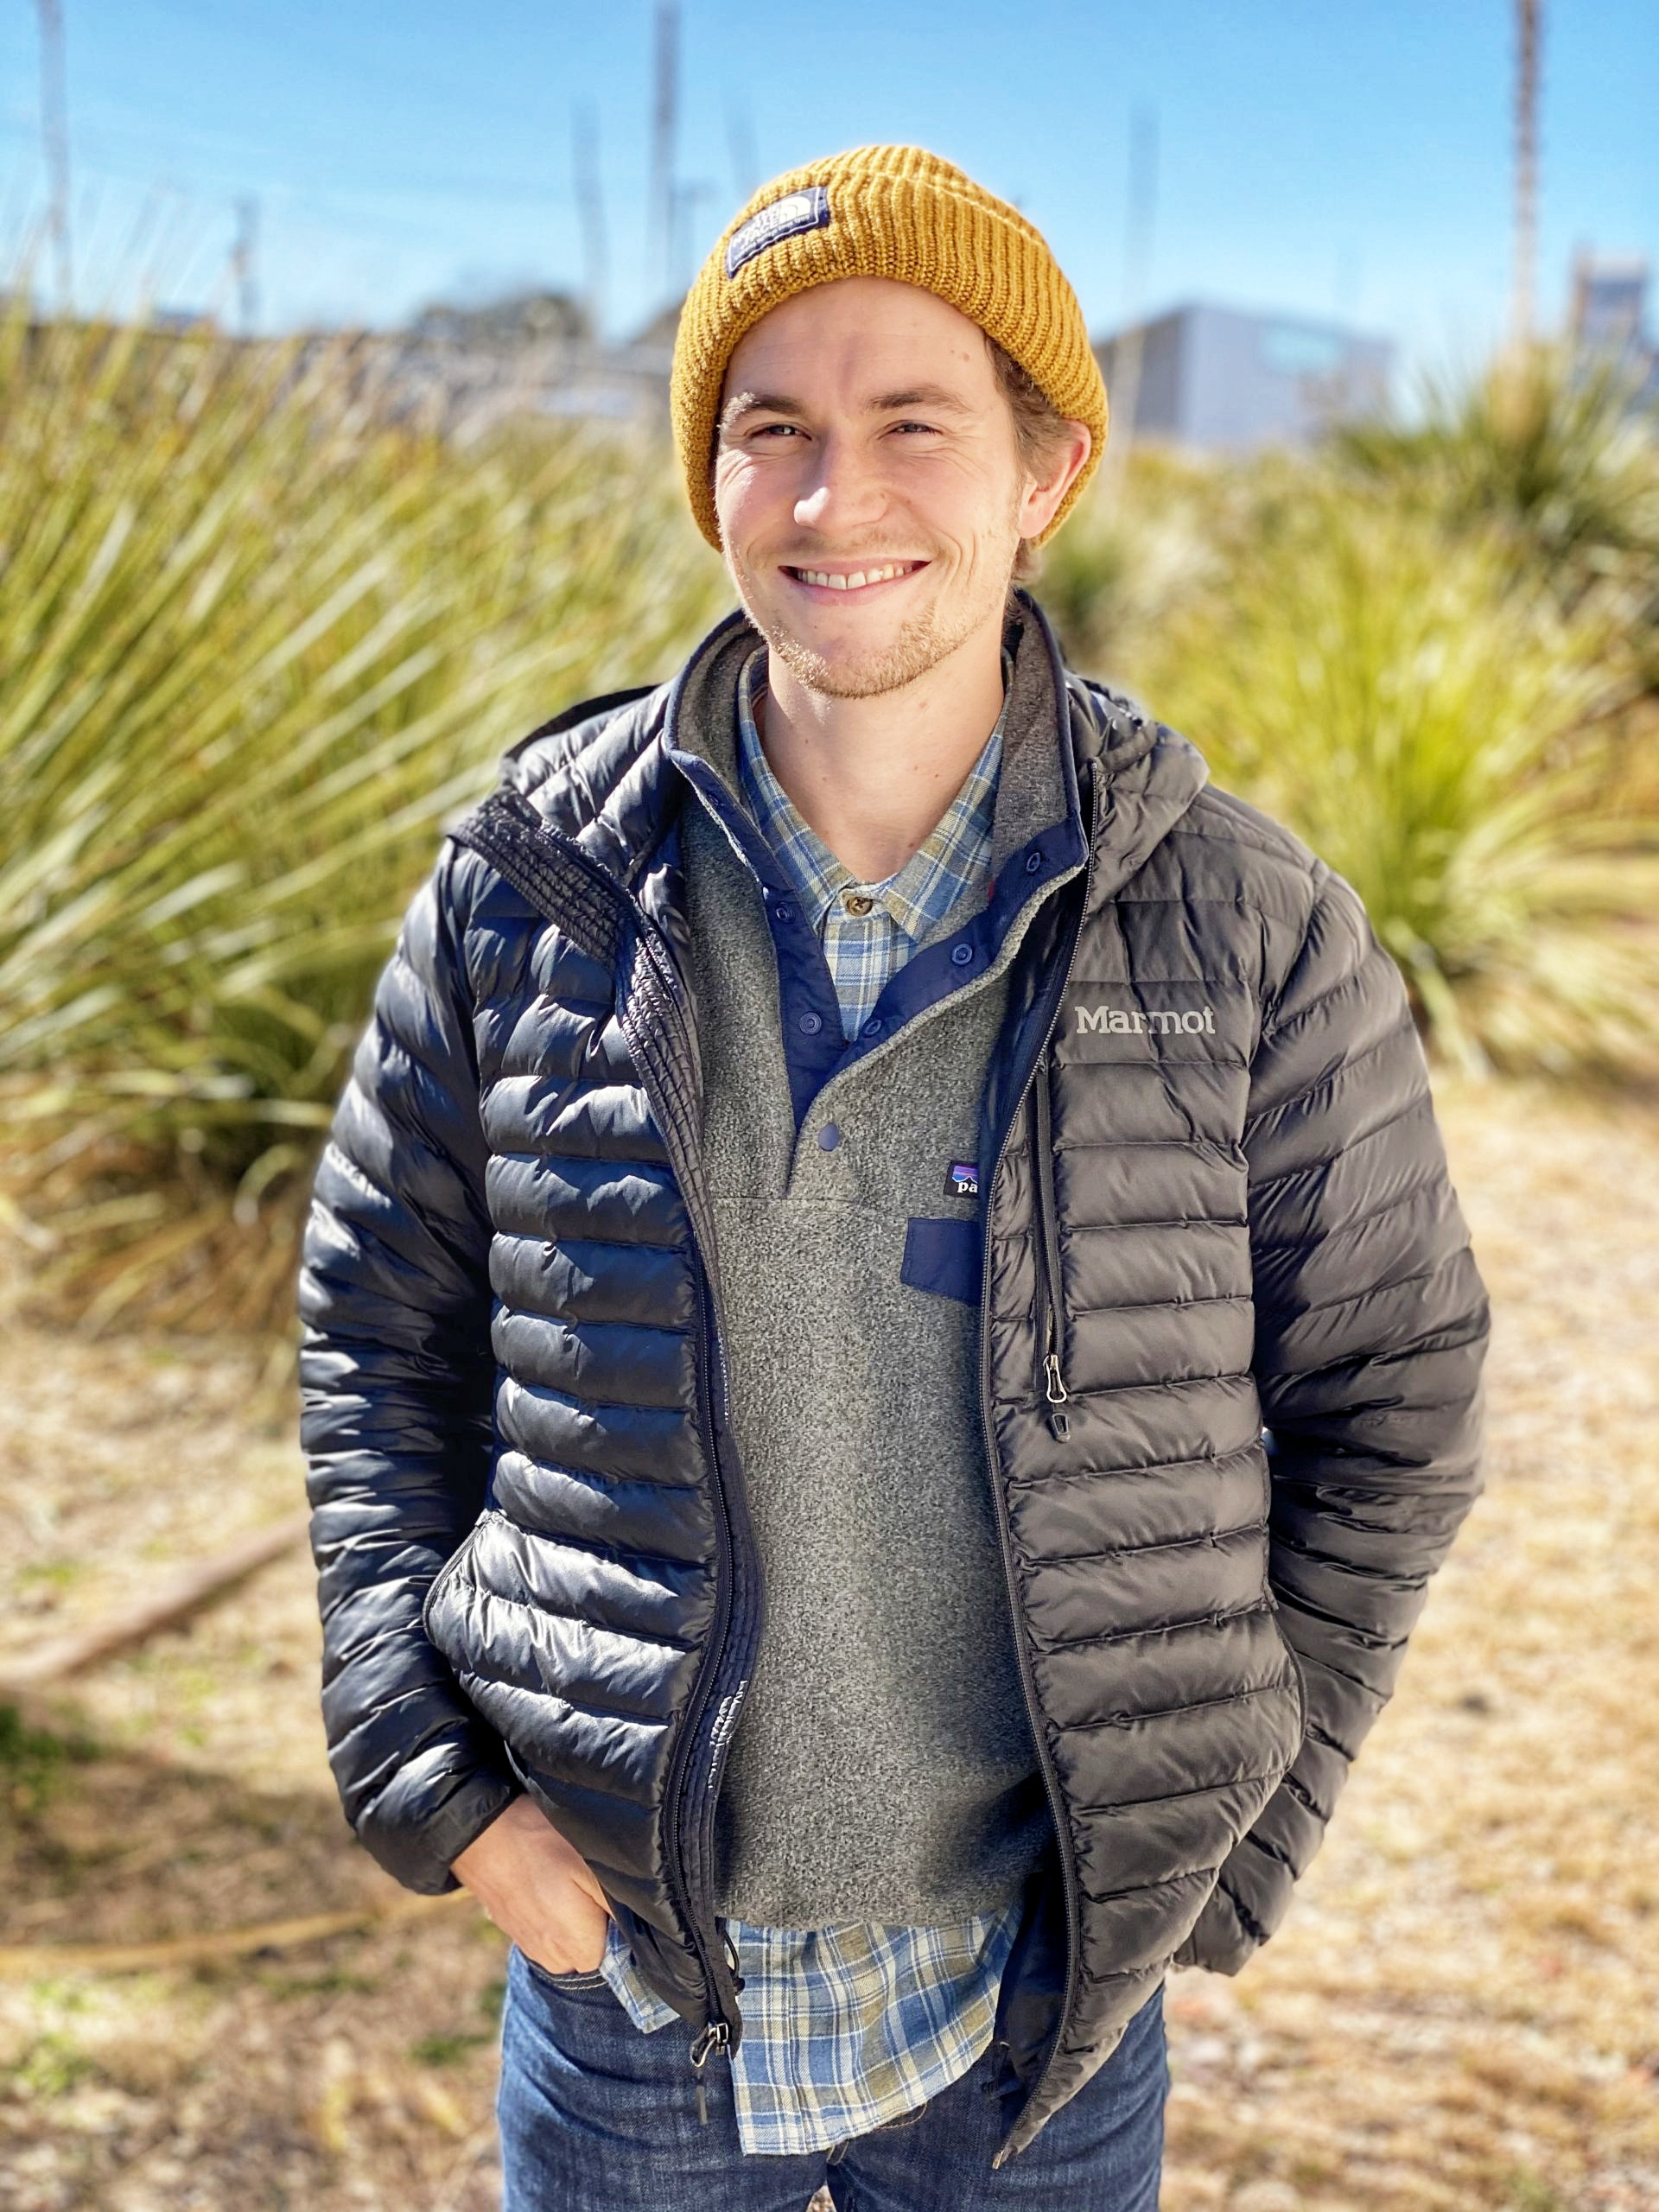 Cory Ames CEO of Grow Ensemble wearing yellow beanie and jacket